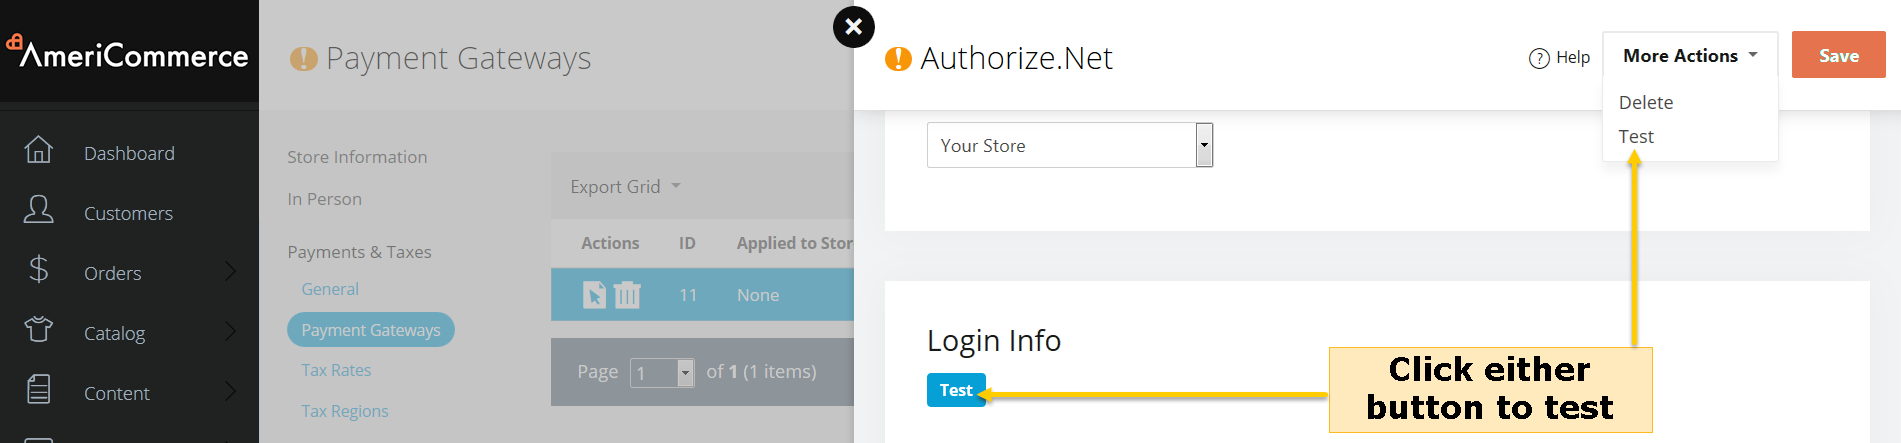 setting up a payment gateway knowledge center